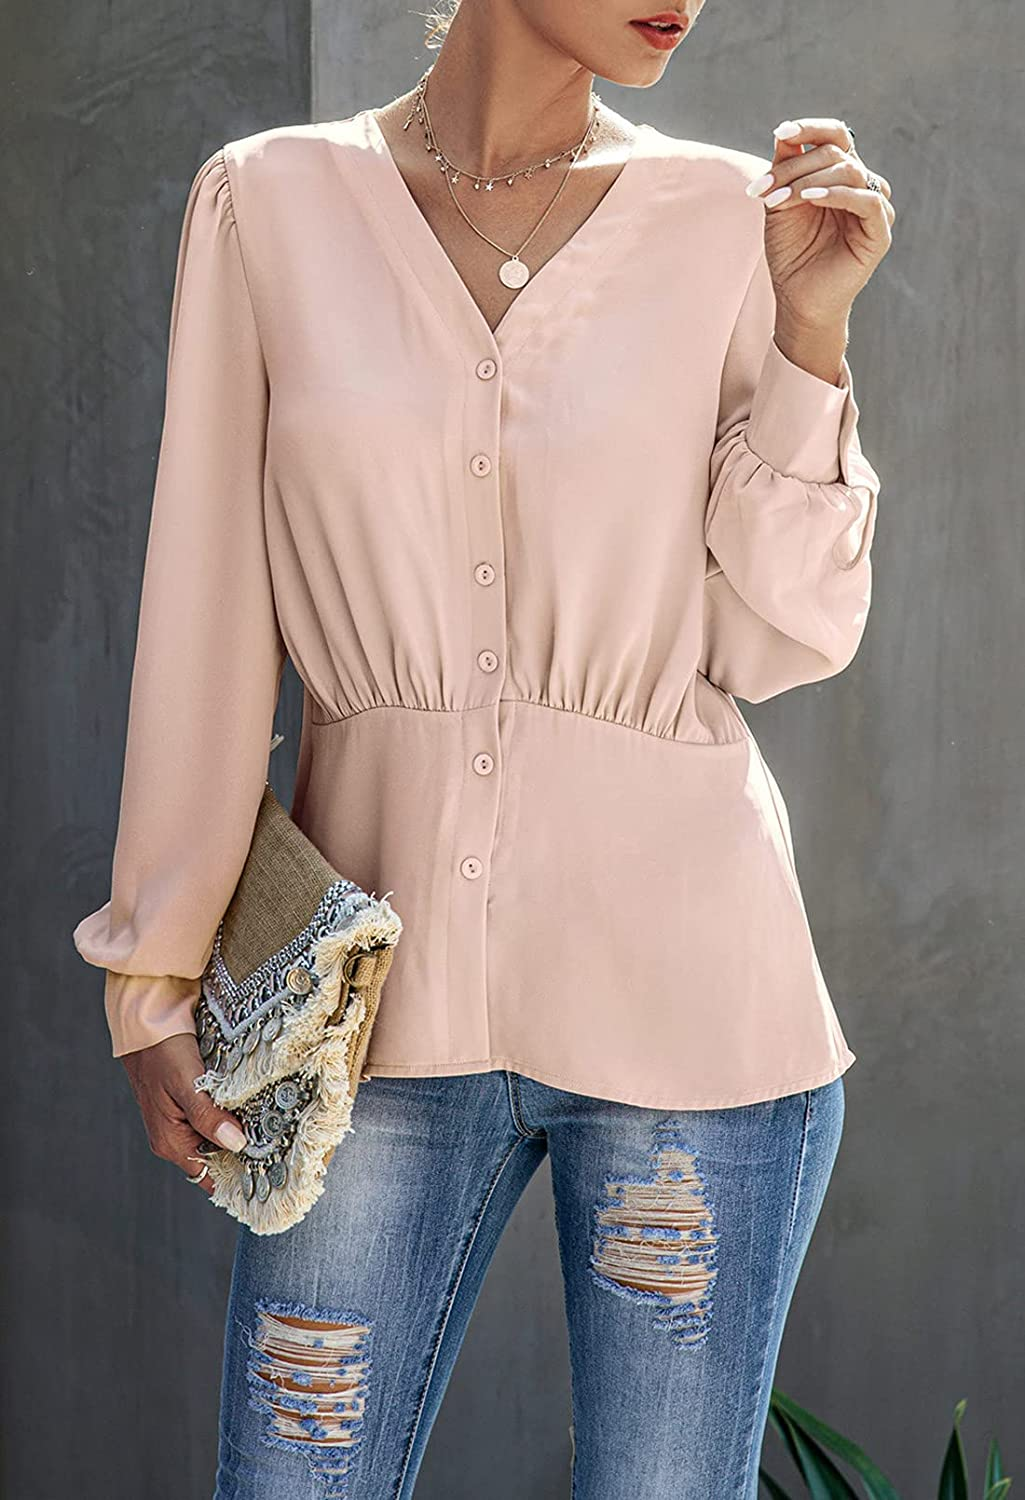 Meenew Women's Button Down Shirts Work Blouses Pleated Long Sleeve Tops Pink M